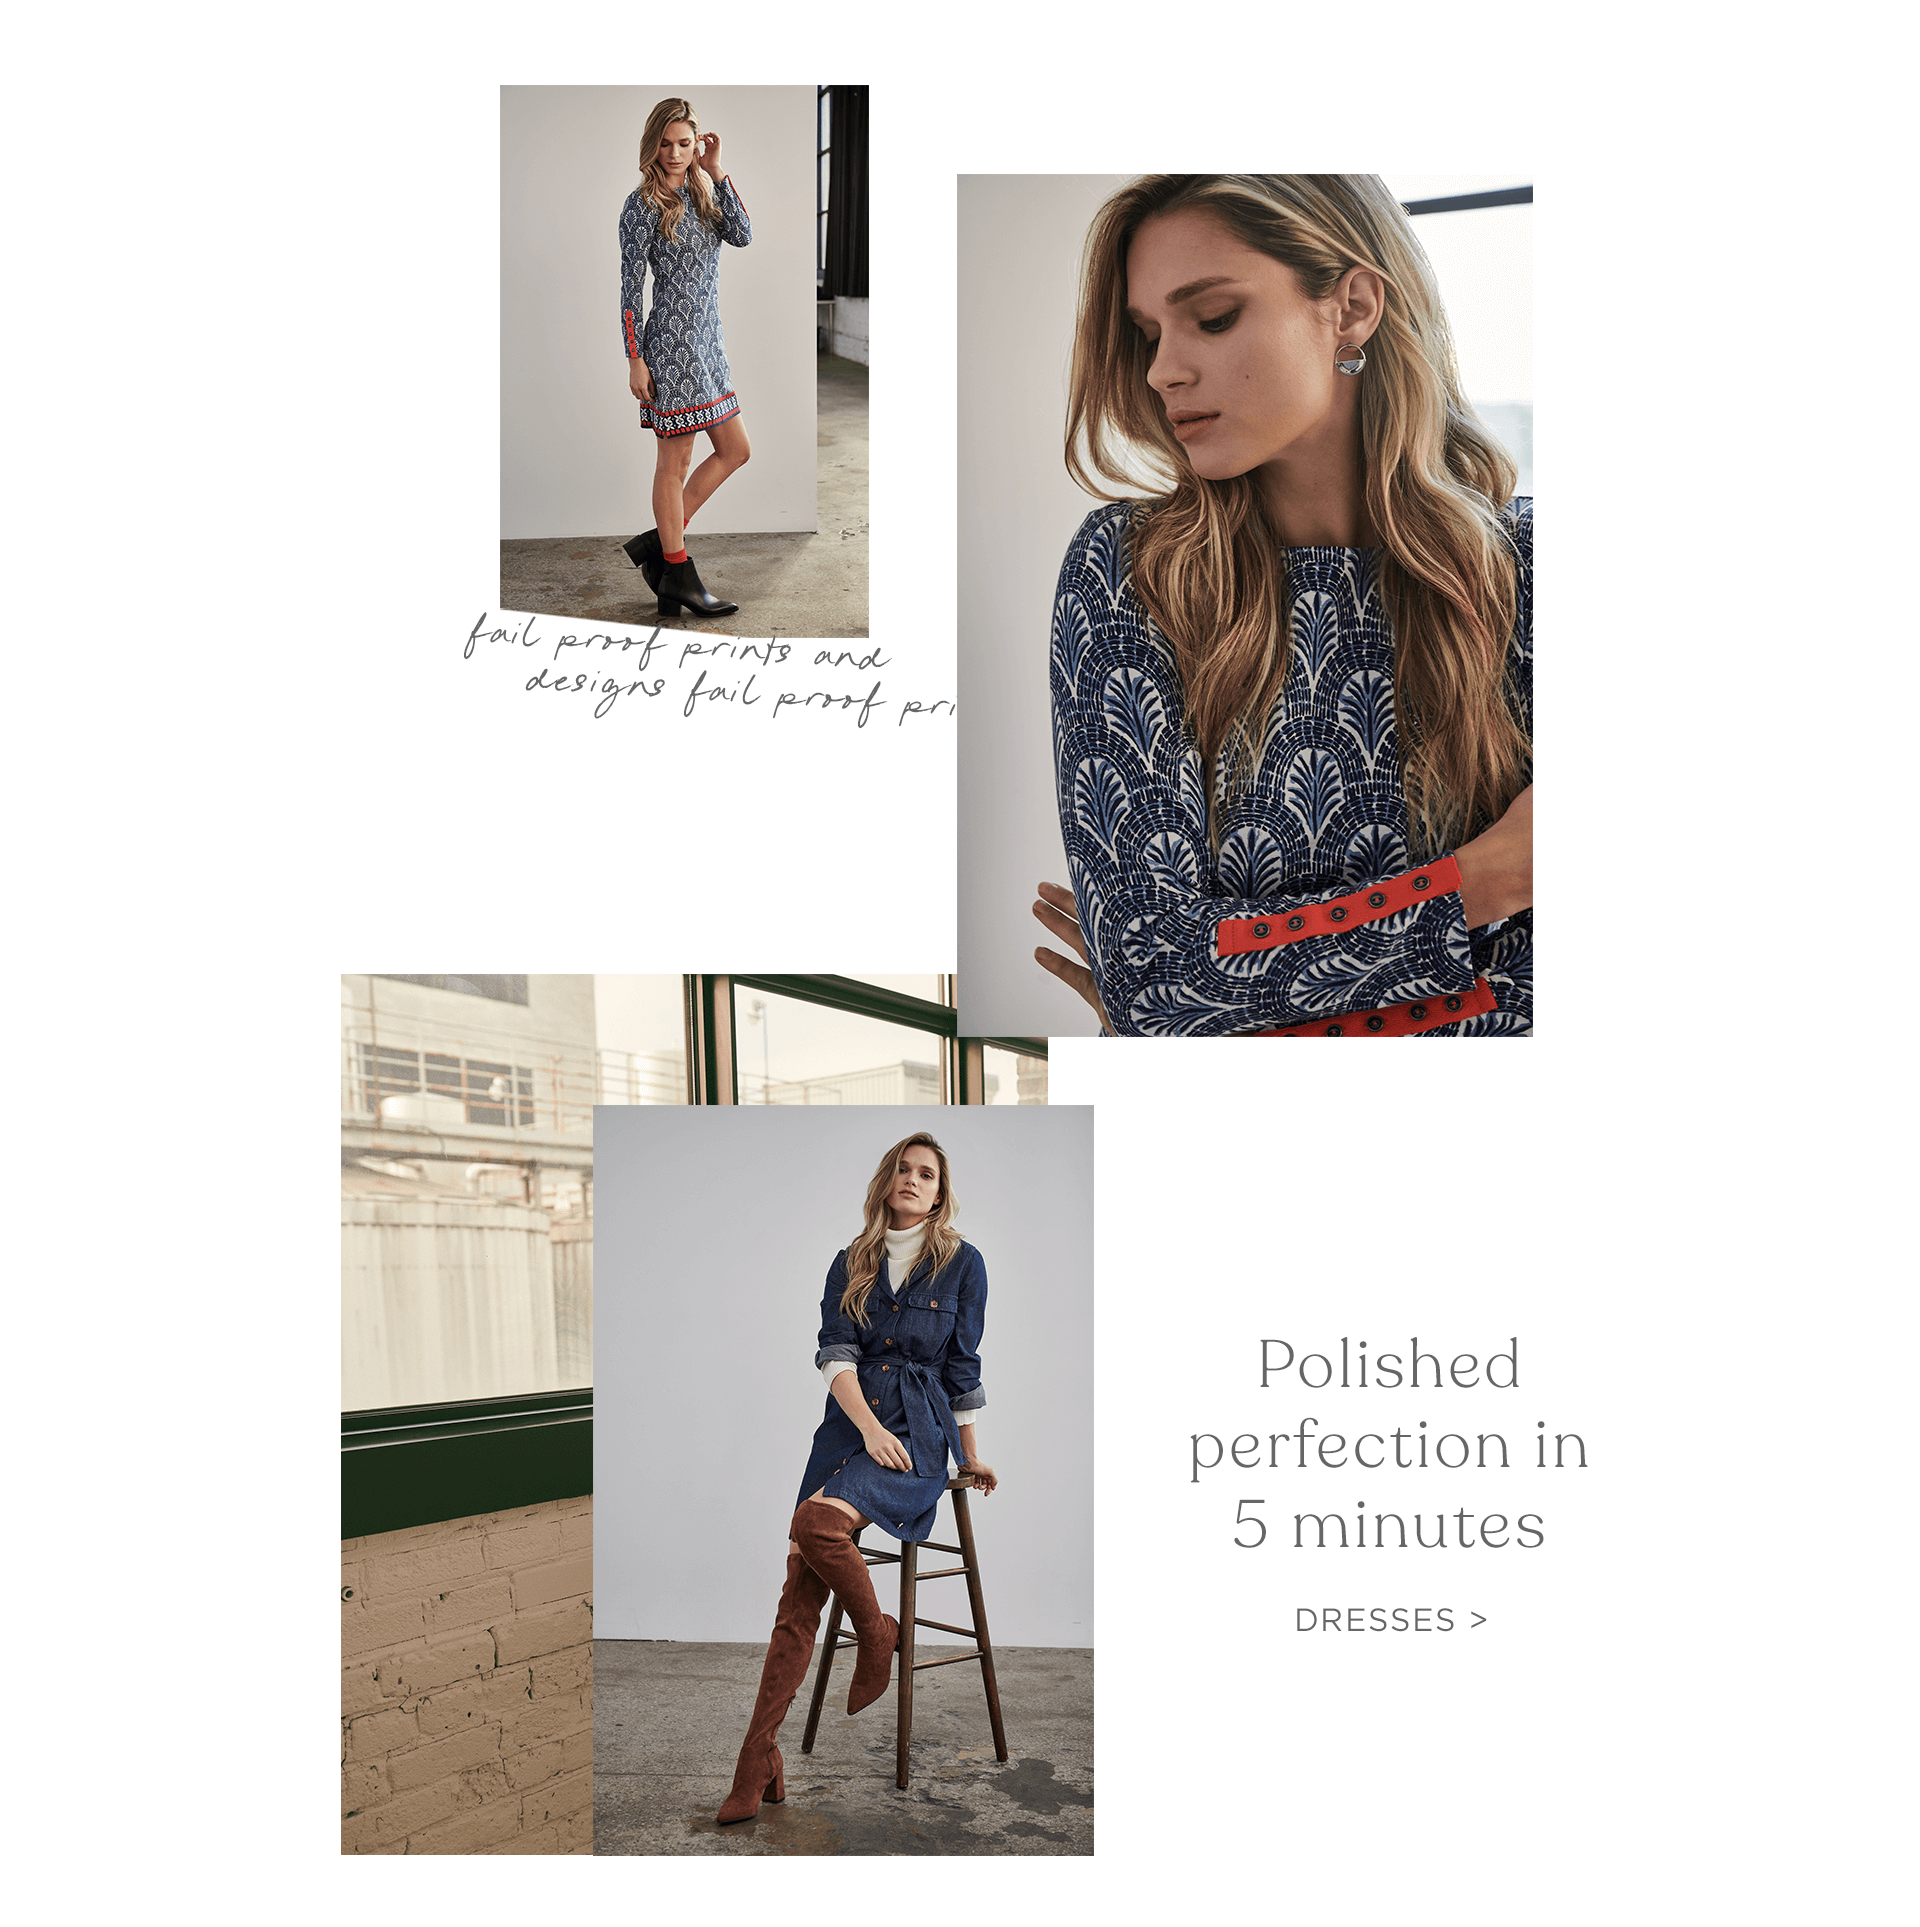 Polished perfection in 5 minutes. Shop new dresses.